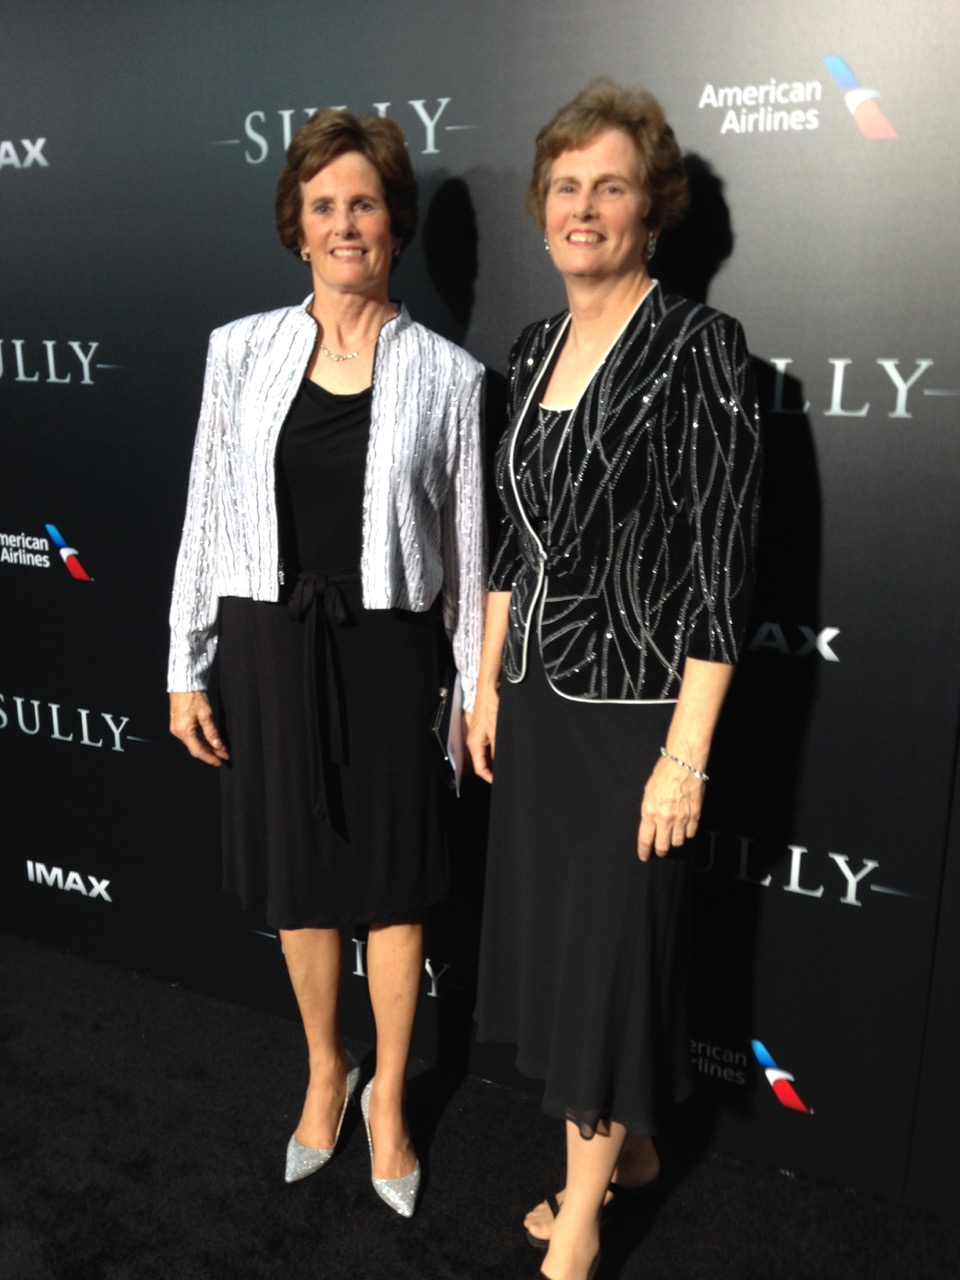 LUCY AND HER TWIN SISTER AT SULLY PREMIERE